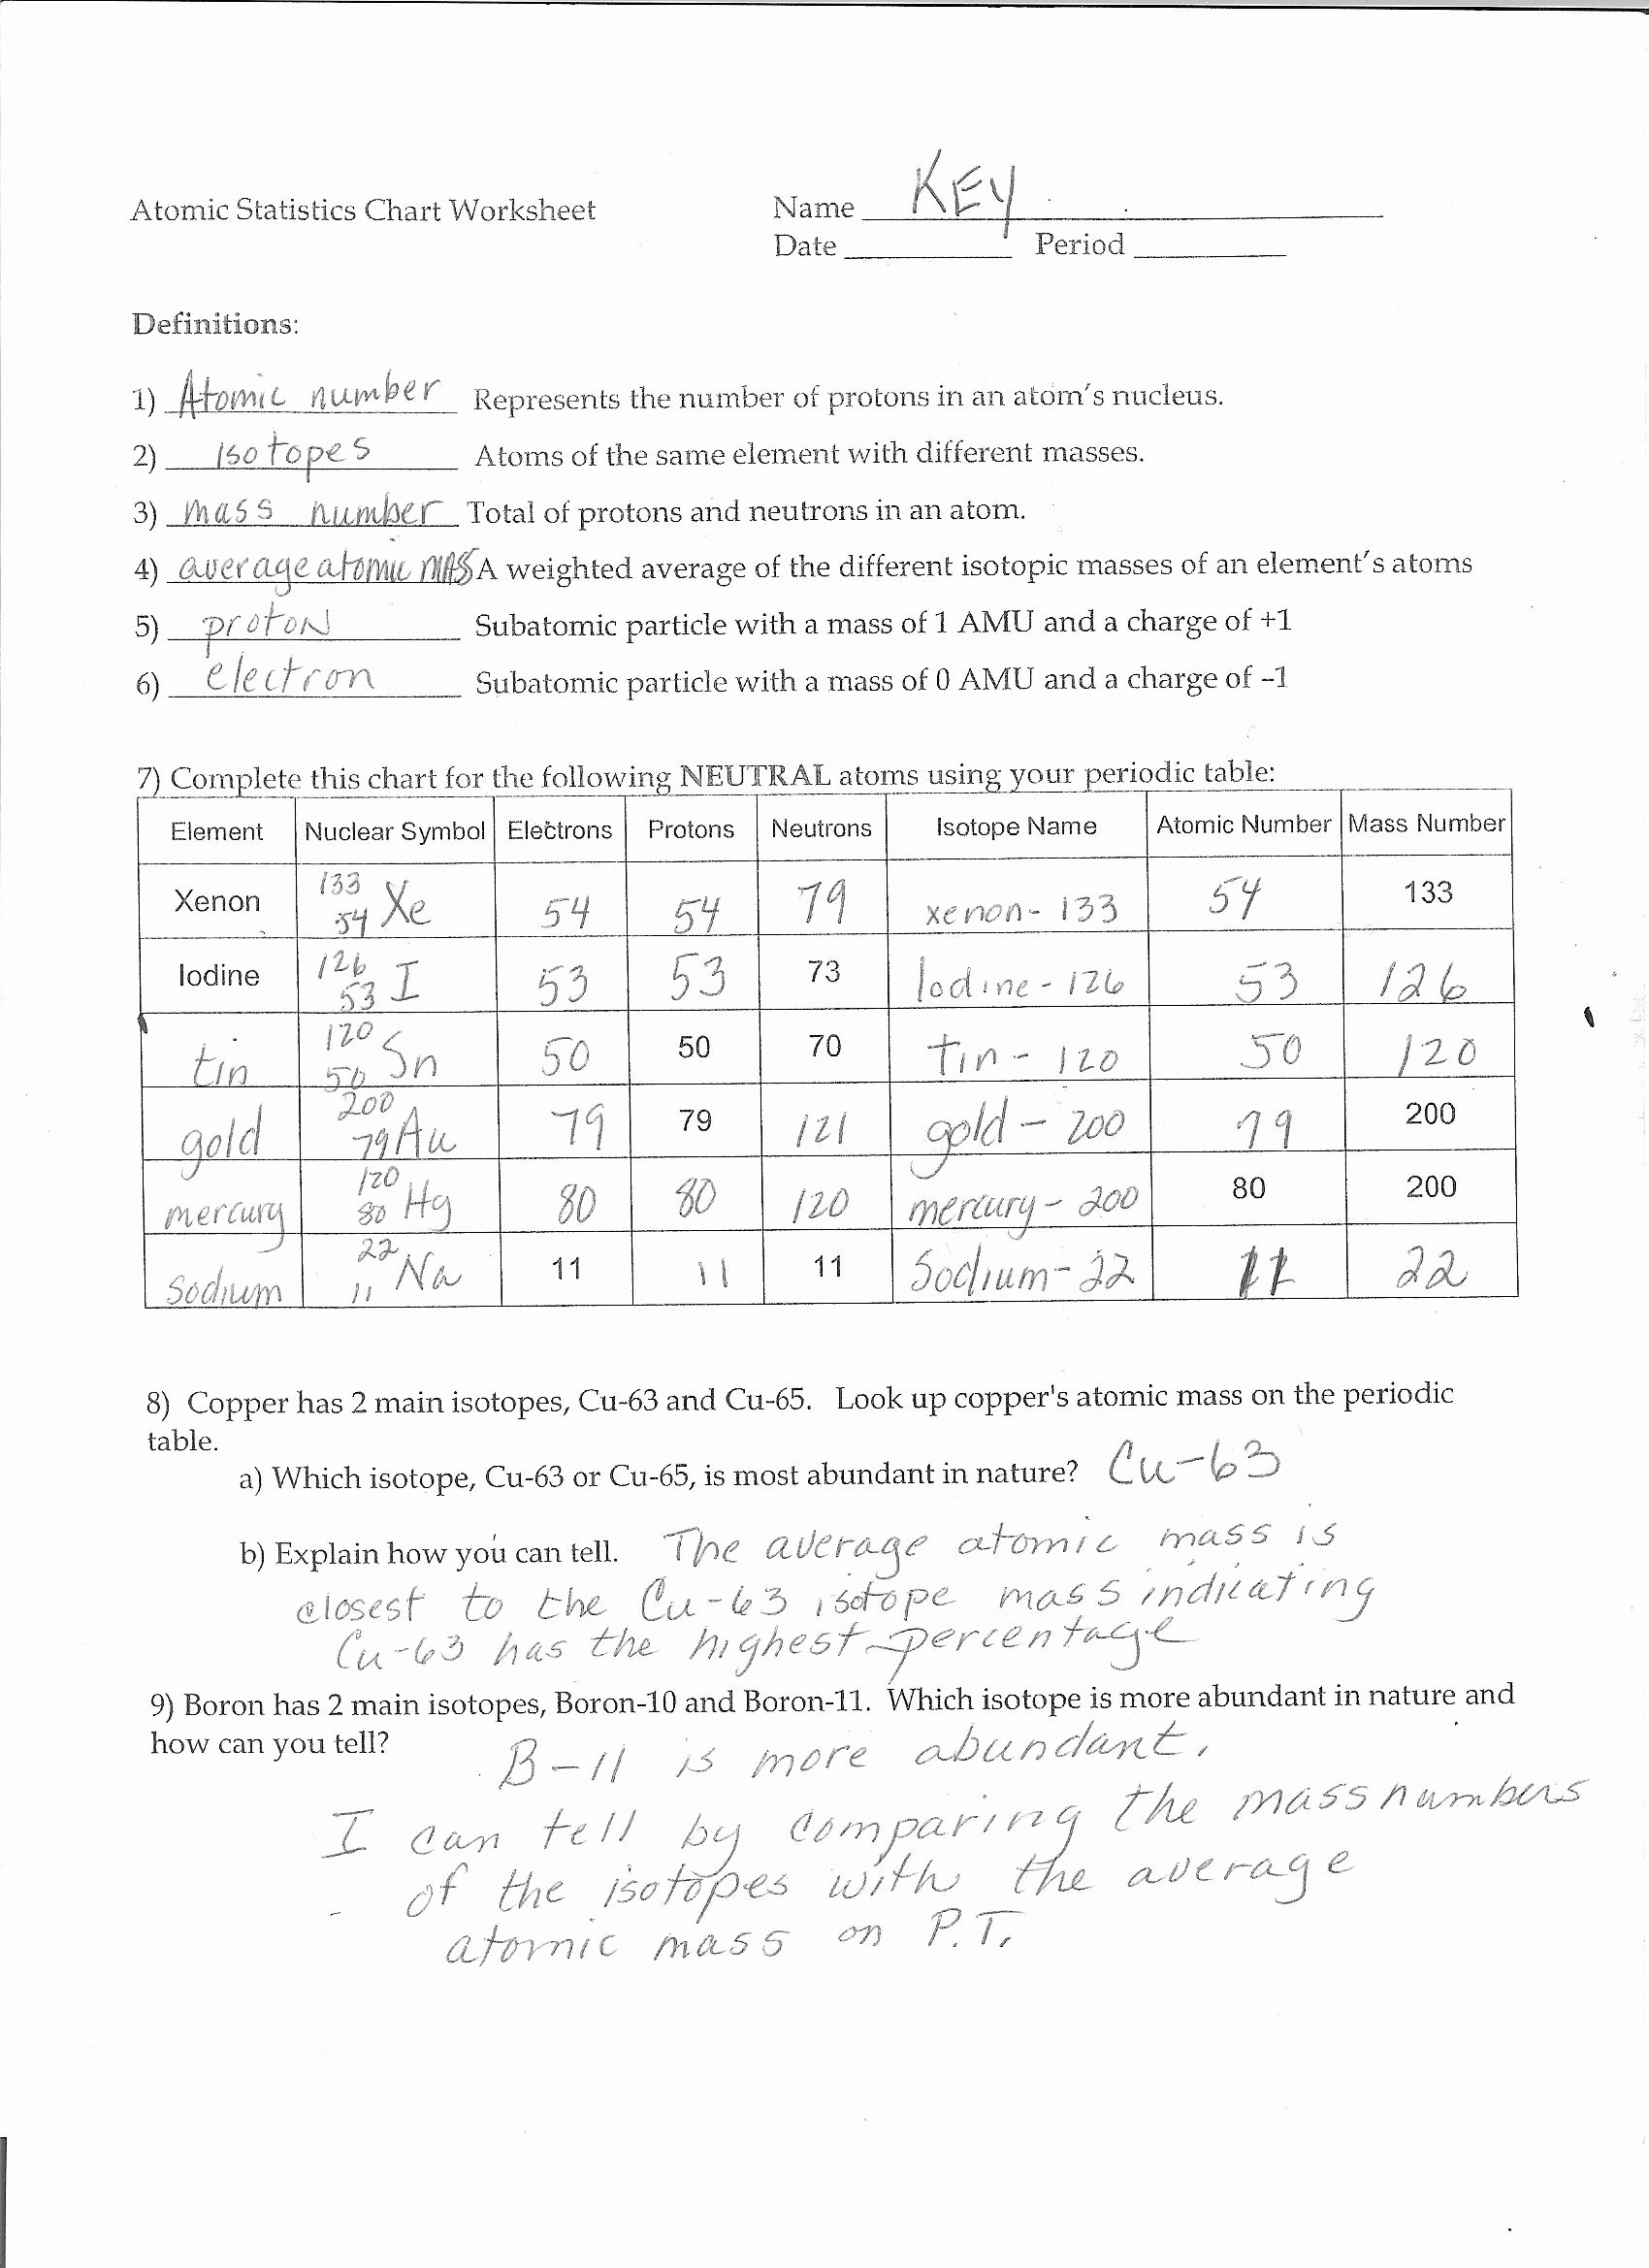 Atomic Structure Worksheet Answers Best Of isotopes Ions and atoms Worksheet 2 Answer Key